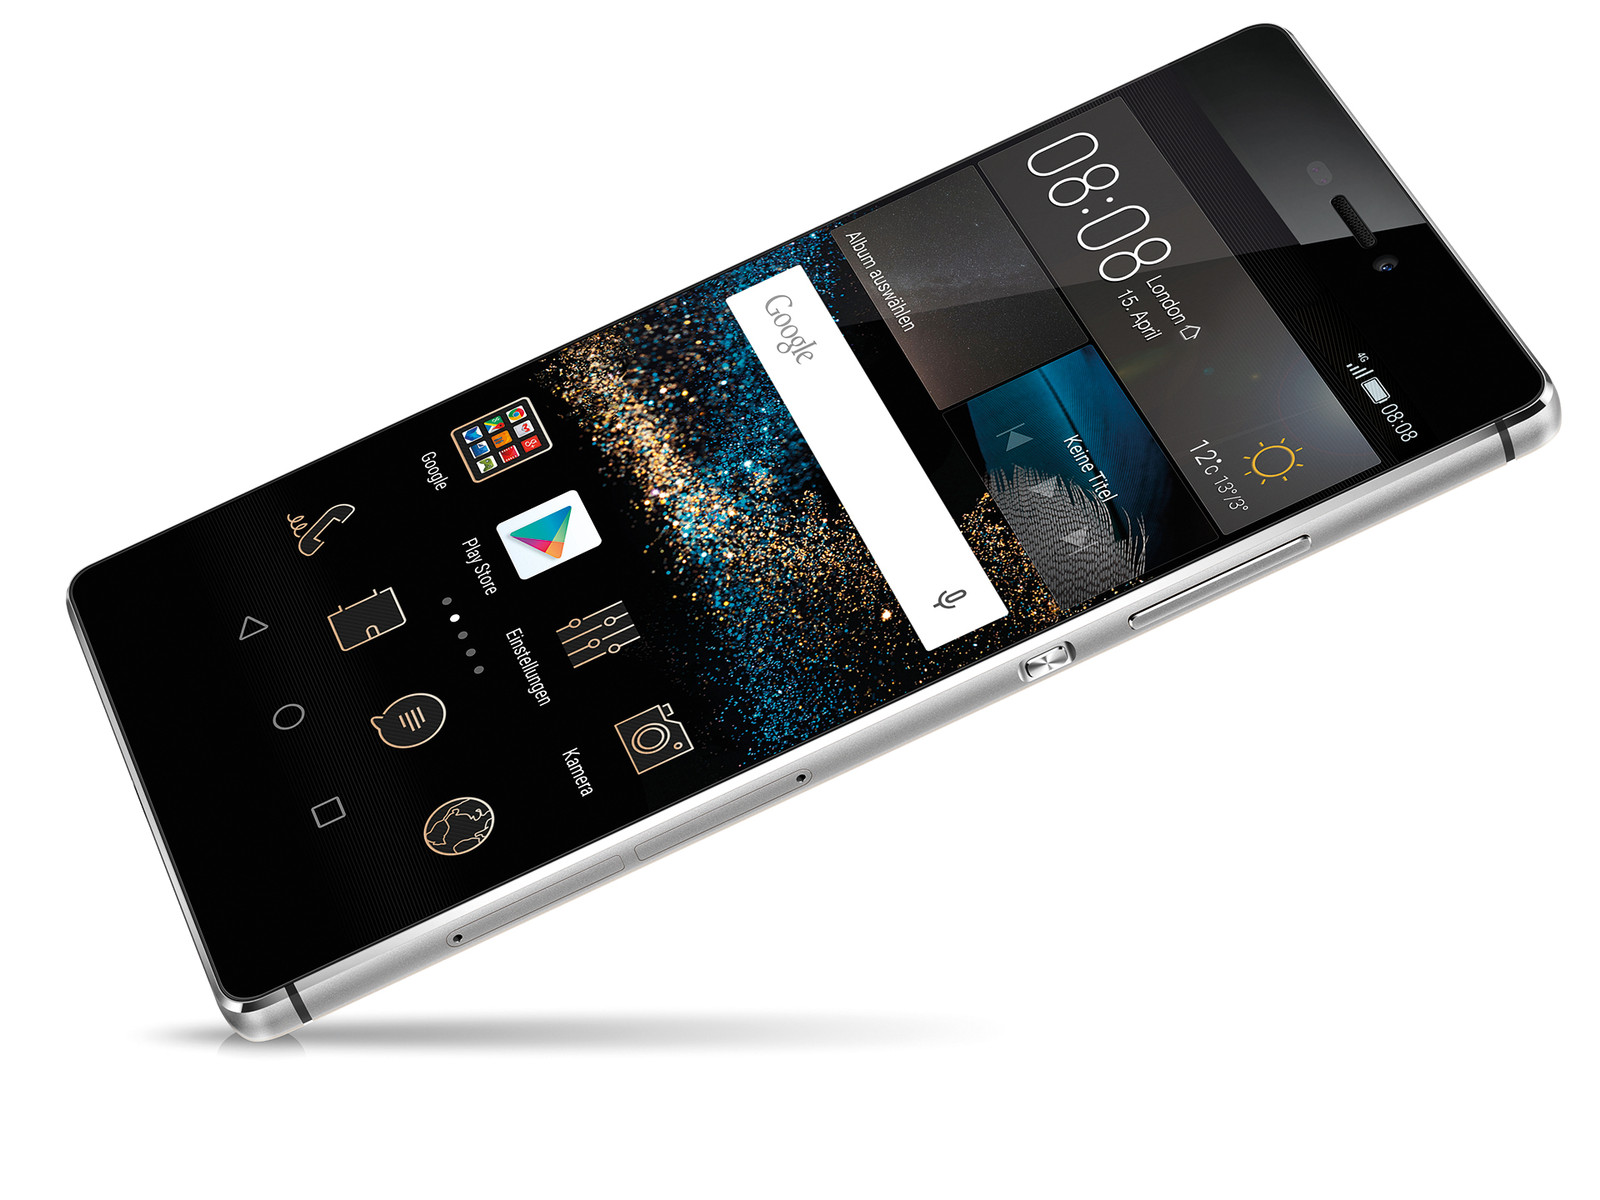 How to Update Huawei P8 Lite (ALE-L21) to Android 6 0 Marshmallow